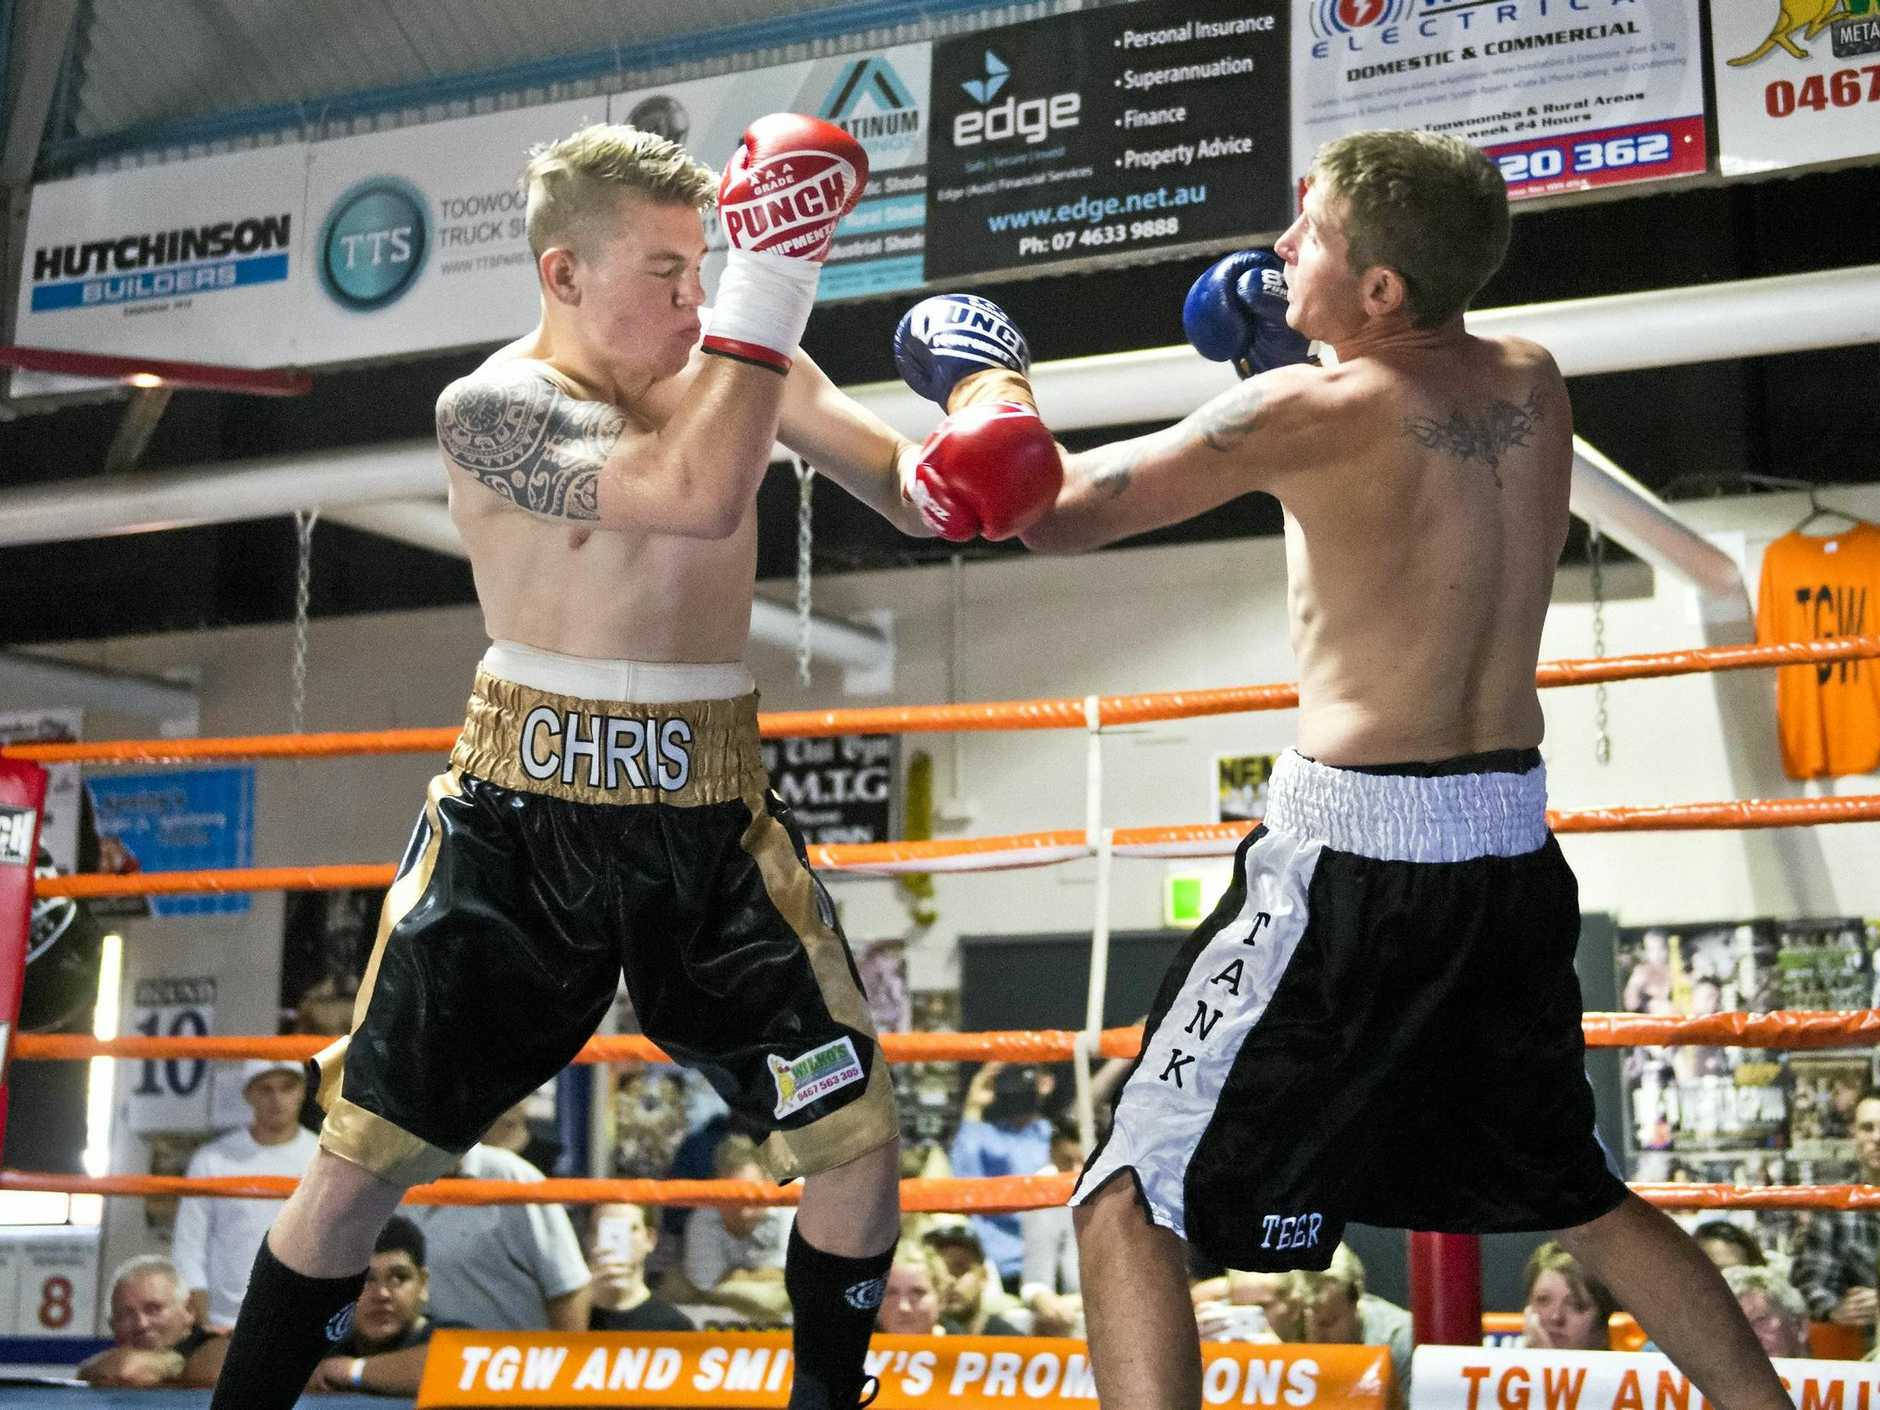 RING RUMBLE: Chris Brackin and Kyle Teer fight during the pro boxing bouts at Smithy's Gym.